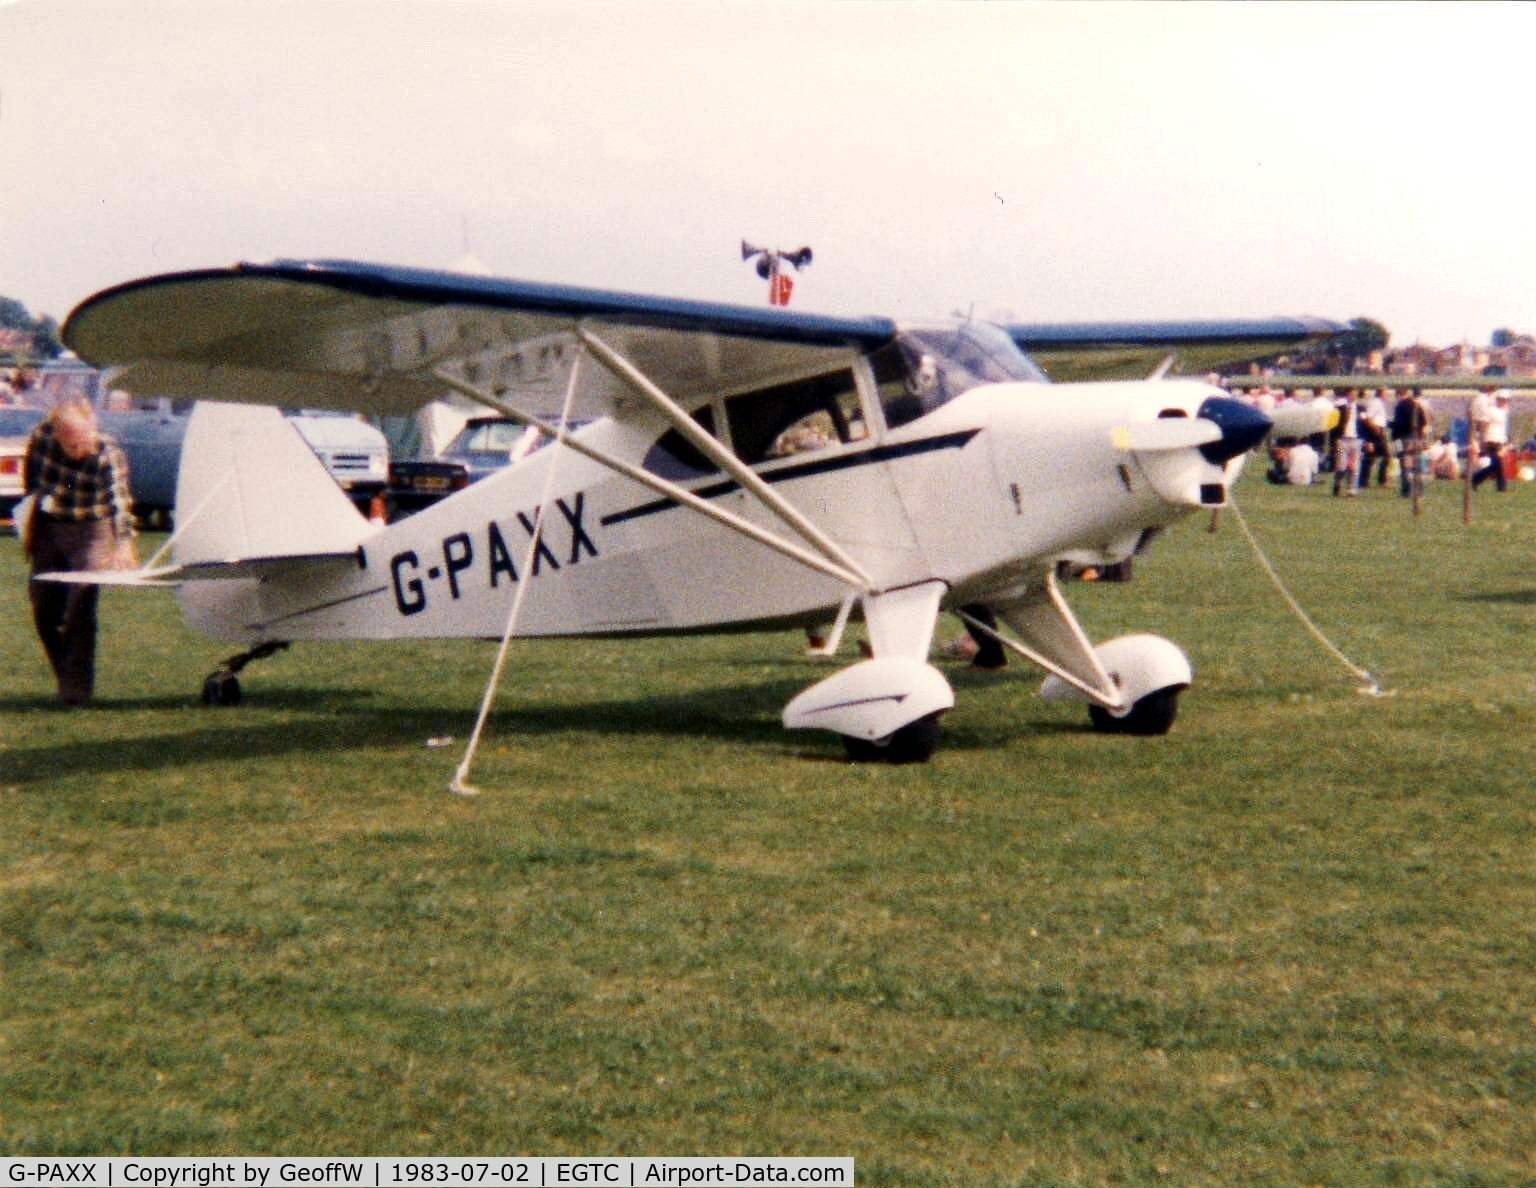 G-PAXX, 1954 Piper PA-20-135 Pacer Pacer C/N 20-1107, PA-20 Pacer 135 G-PAXX attending the 1983 PFA Rally at Cranfield